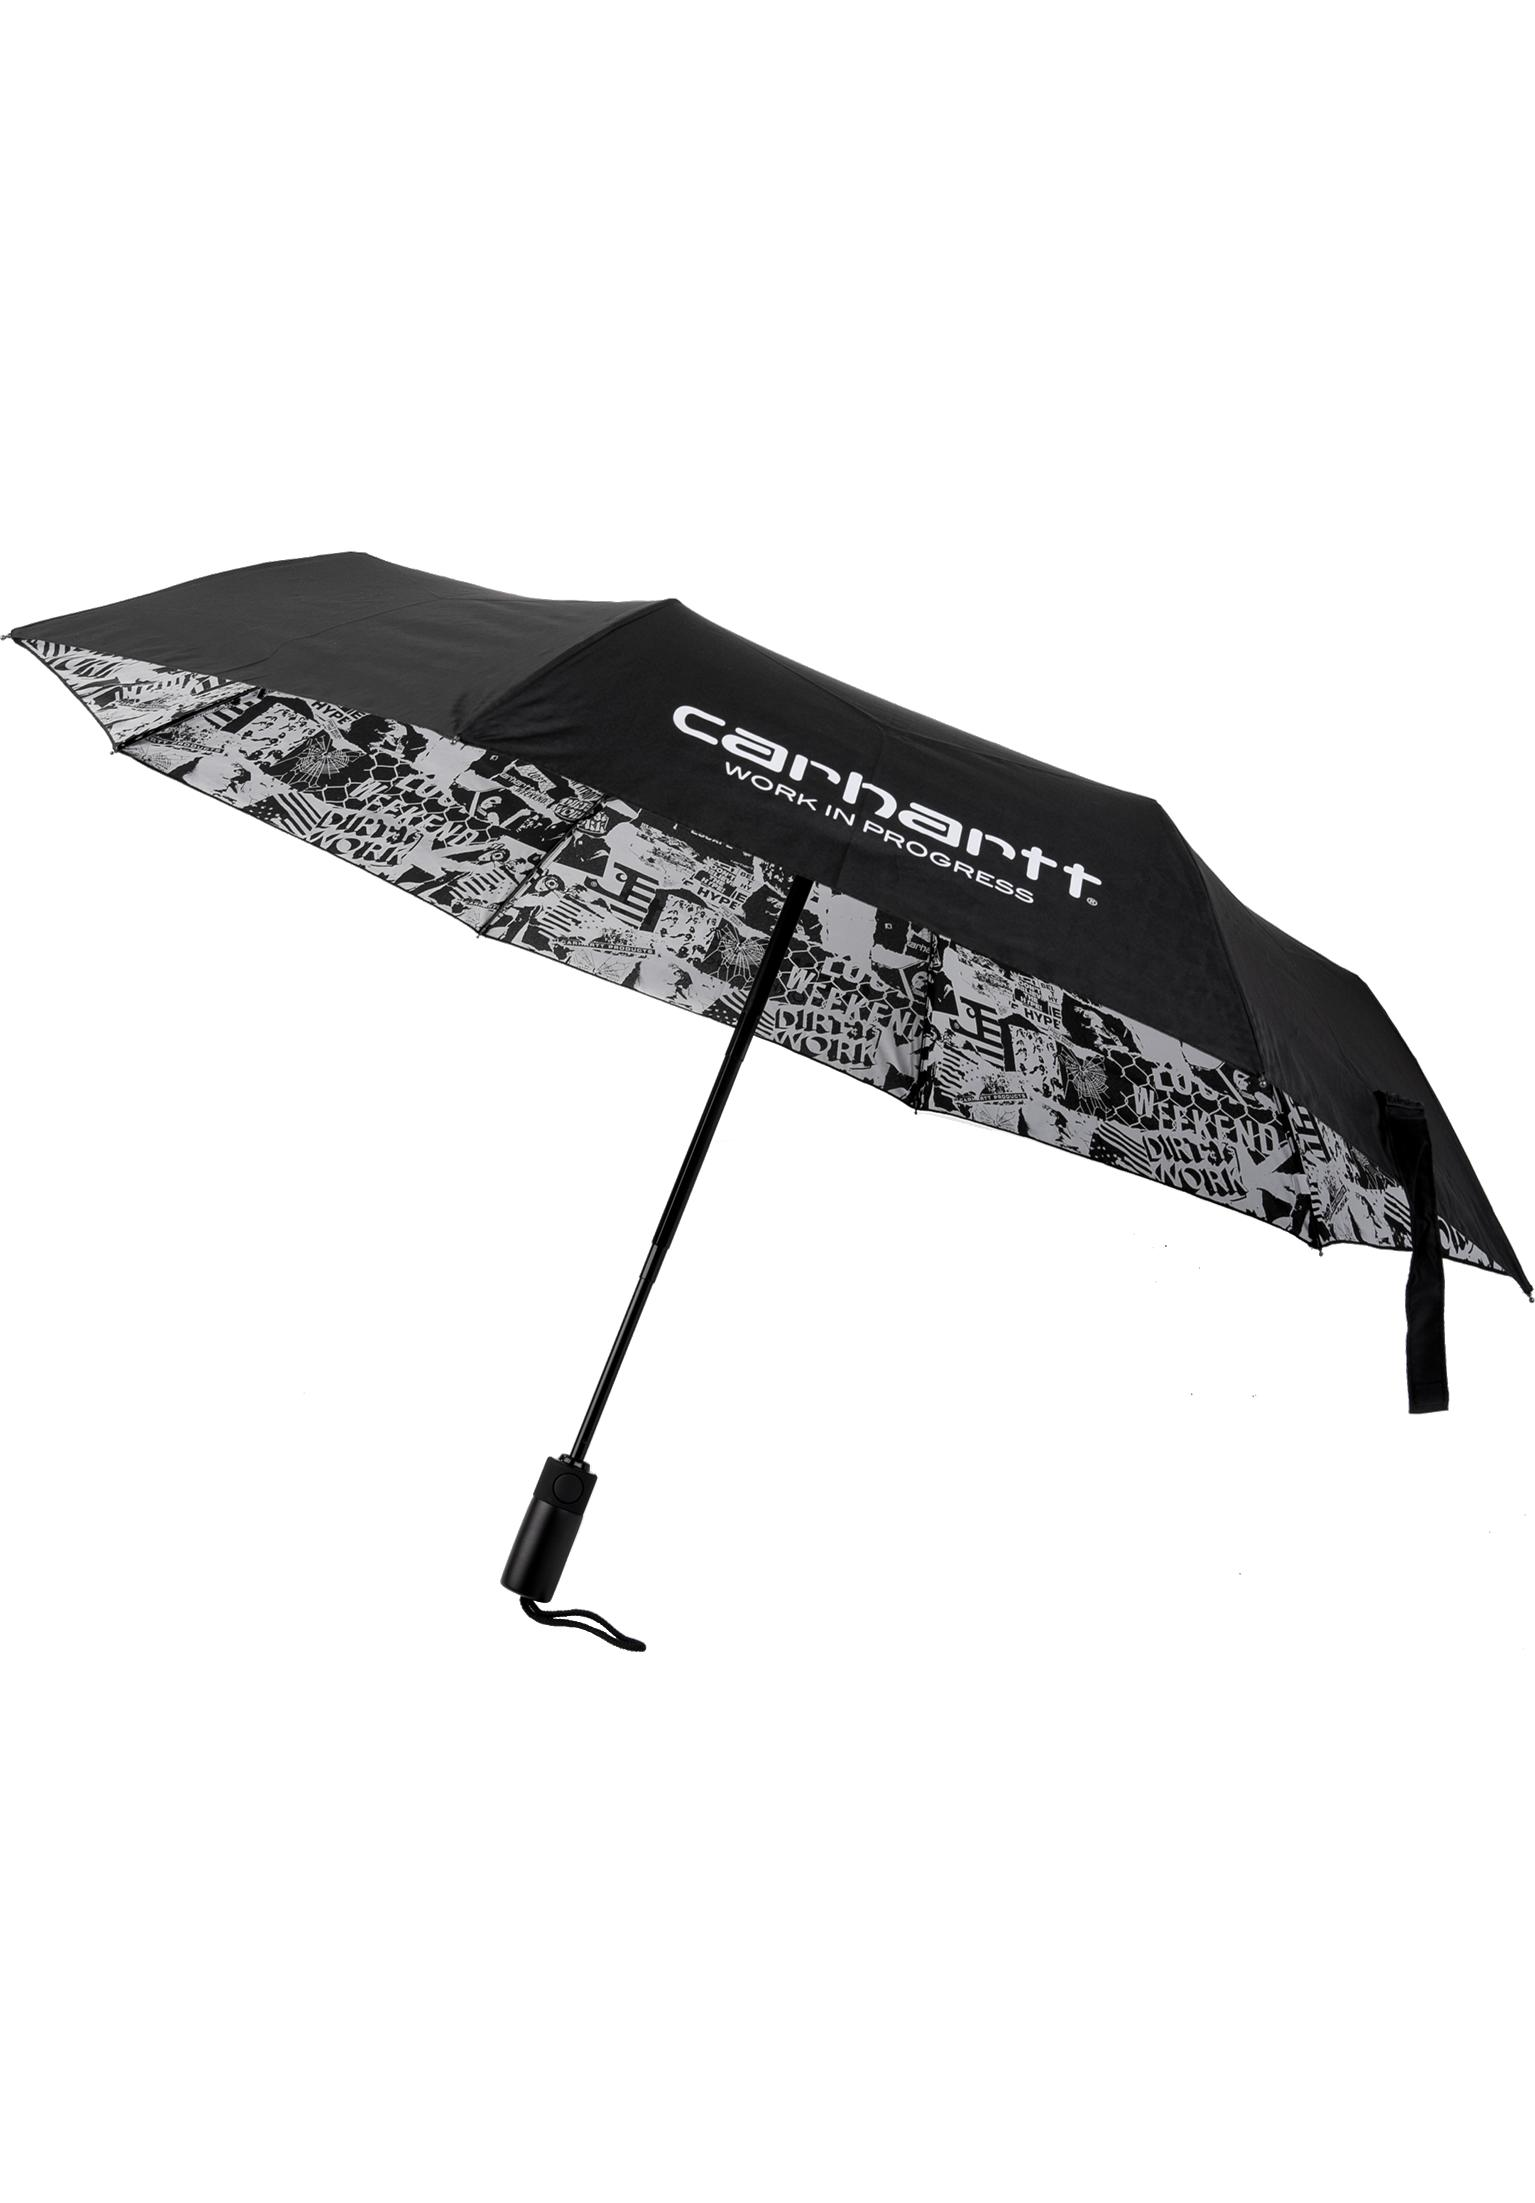 carhartt-wip-verschiedenes-collage-umbrella-black-vorderansicht-0972026.jpg